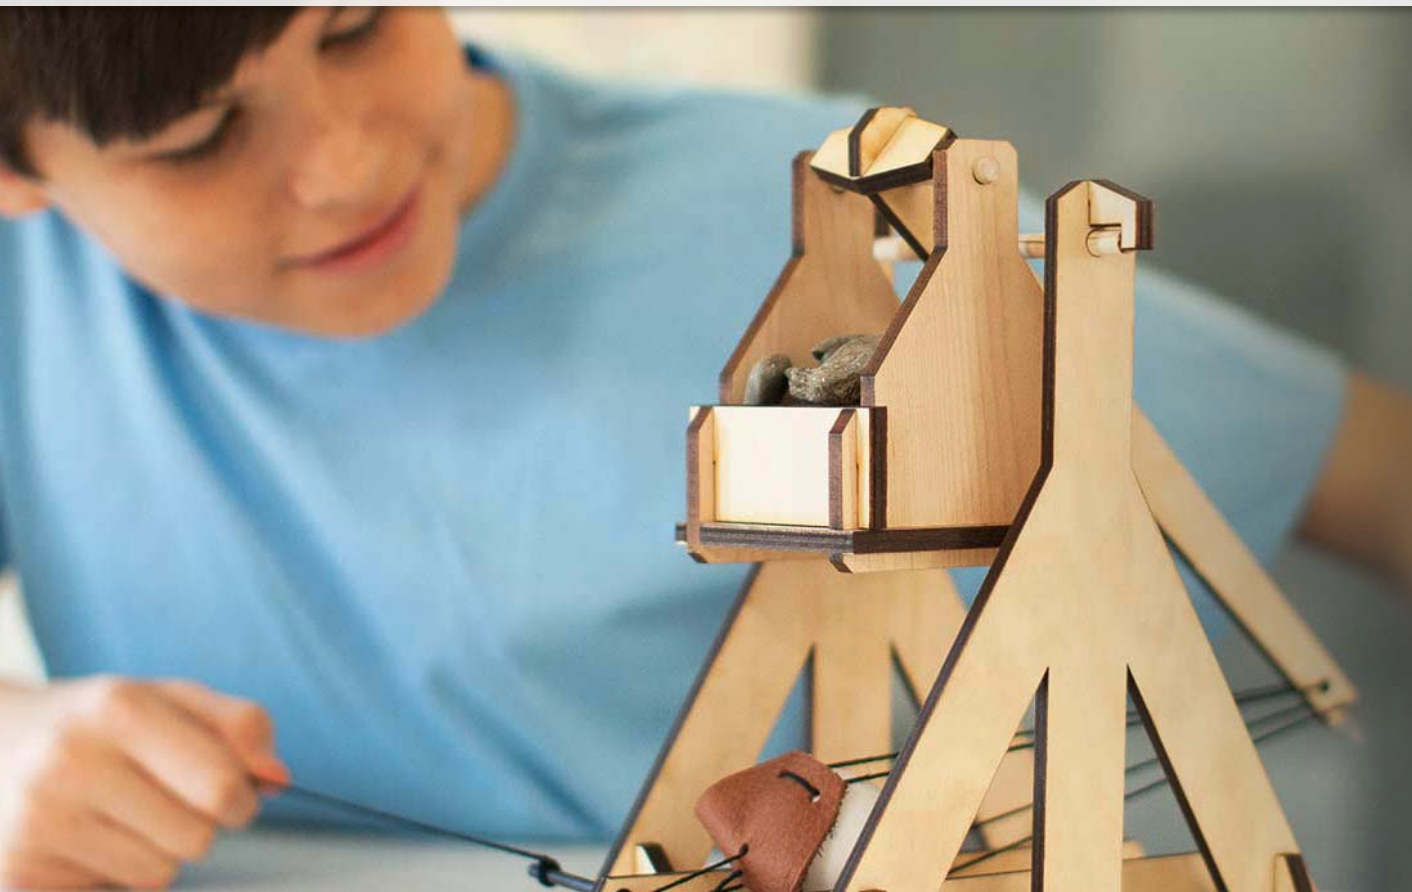 KiwiCo offers crates for every age group to keep your kids engaged and having fun! The Tinker Crates are a perfect gift for an 11-year-old girl.